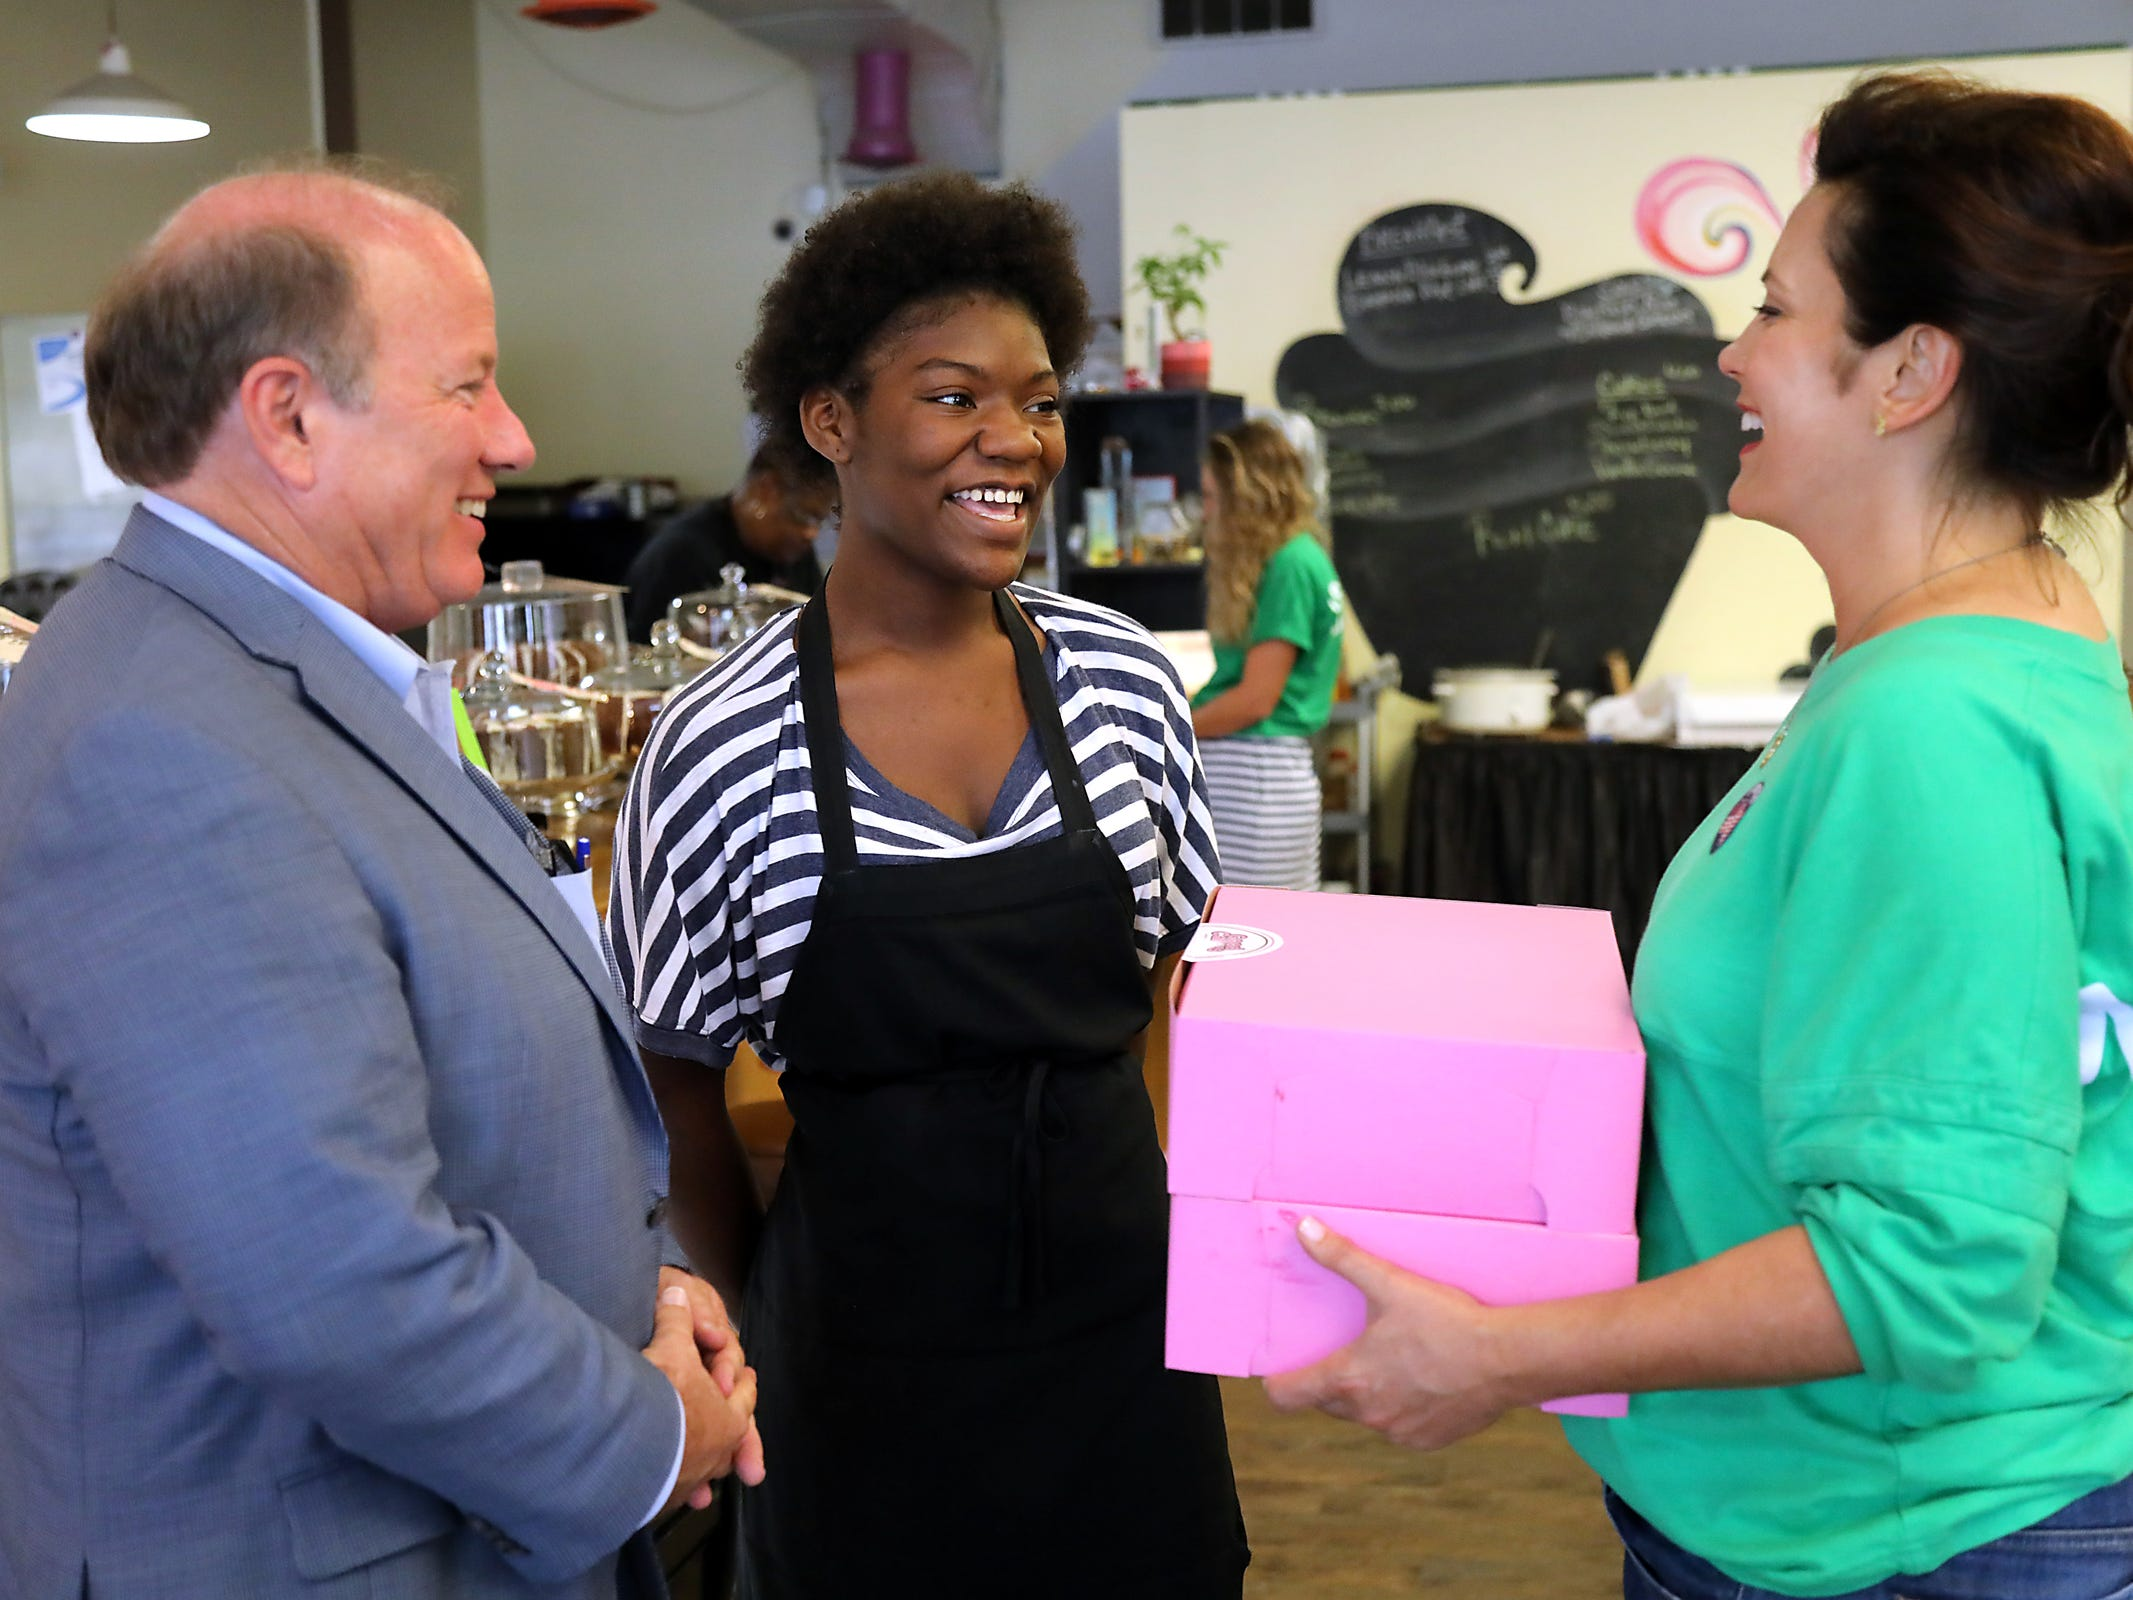 Gubernatorial Democratic Candidate Gretchen Whitmer talks with Chantrice Jones, 15, of Detroit with Detroit Mayor Mike Duggan about her internship at Good Cakes and Bakes through the Grow Detroit's Young Talent summer job program while talking to voters on Michigan Primary day on Tuesday, Aug. 7, 2018.